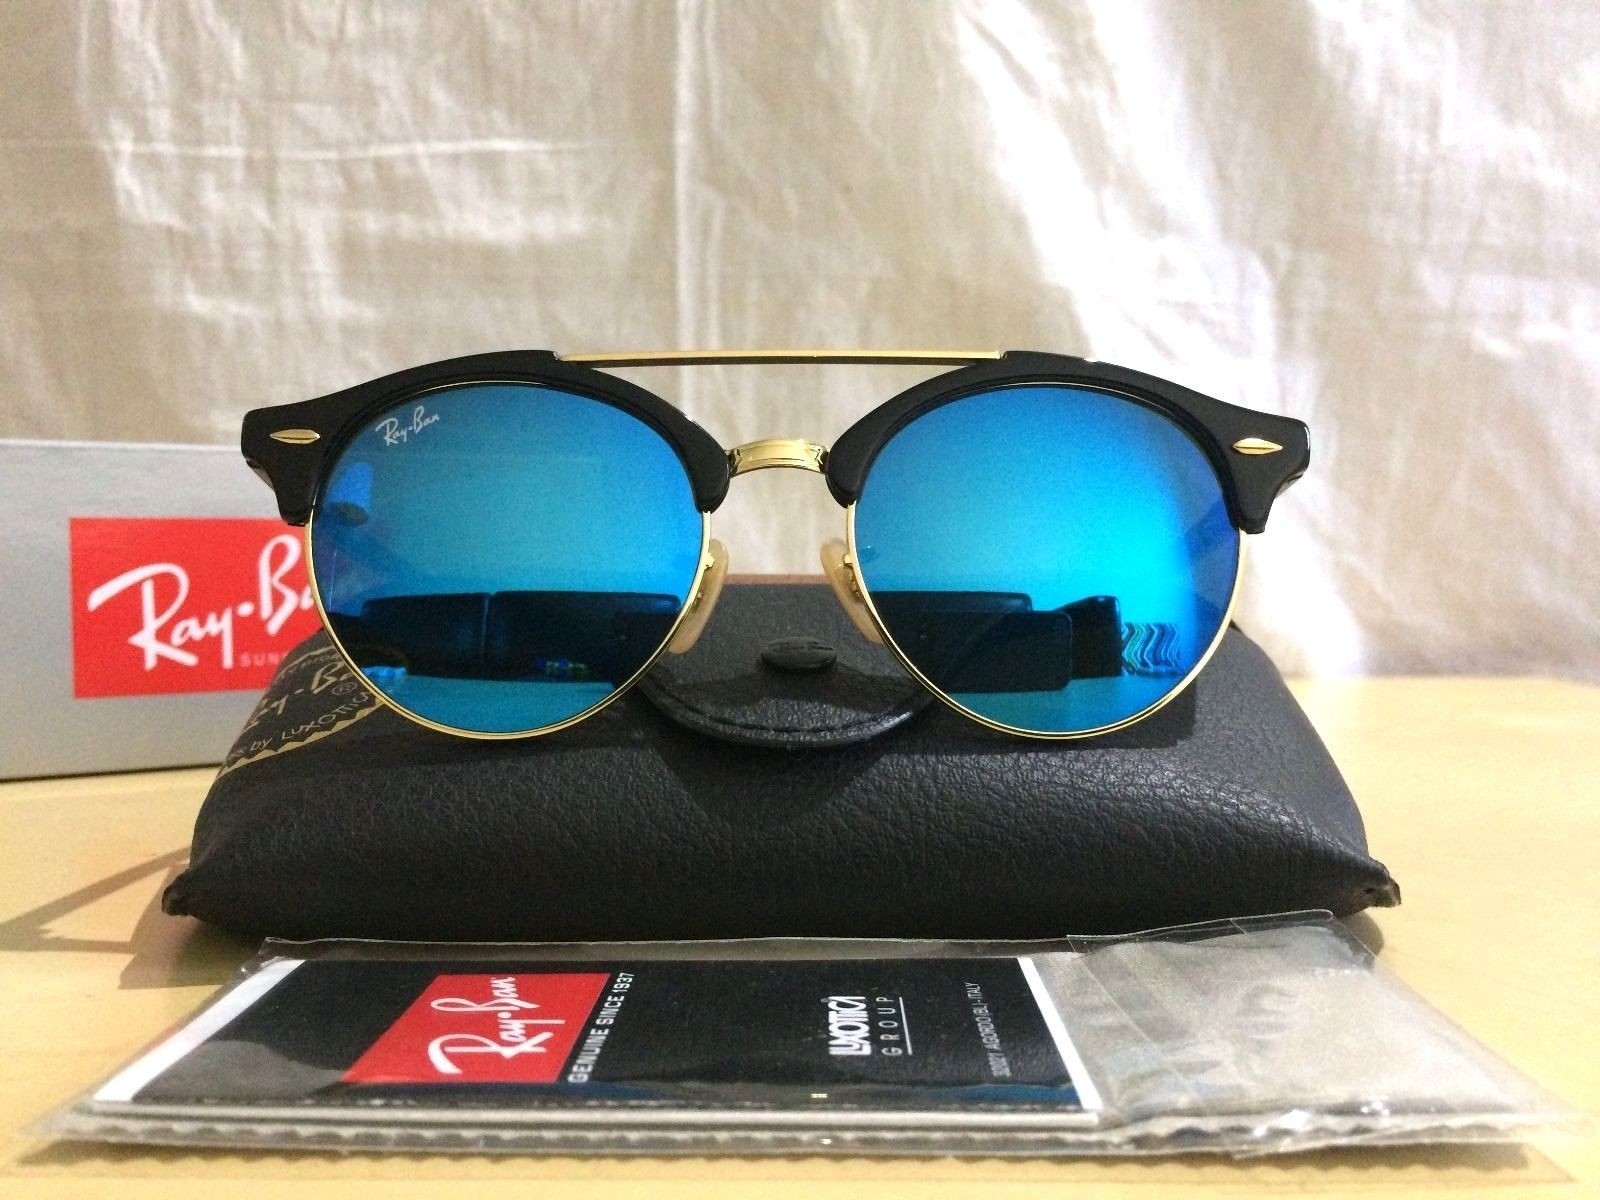 de1fabfd2fc Ray Ban CLUBROUND DOUBLE BRIDGE RB4346 51mm Black   Gold Frame Blue Flash  Lens